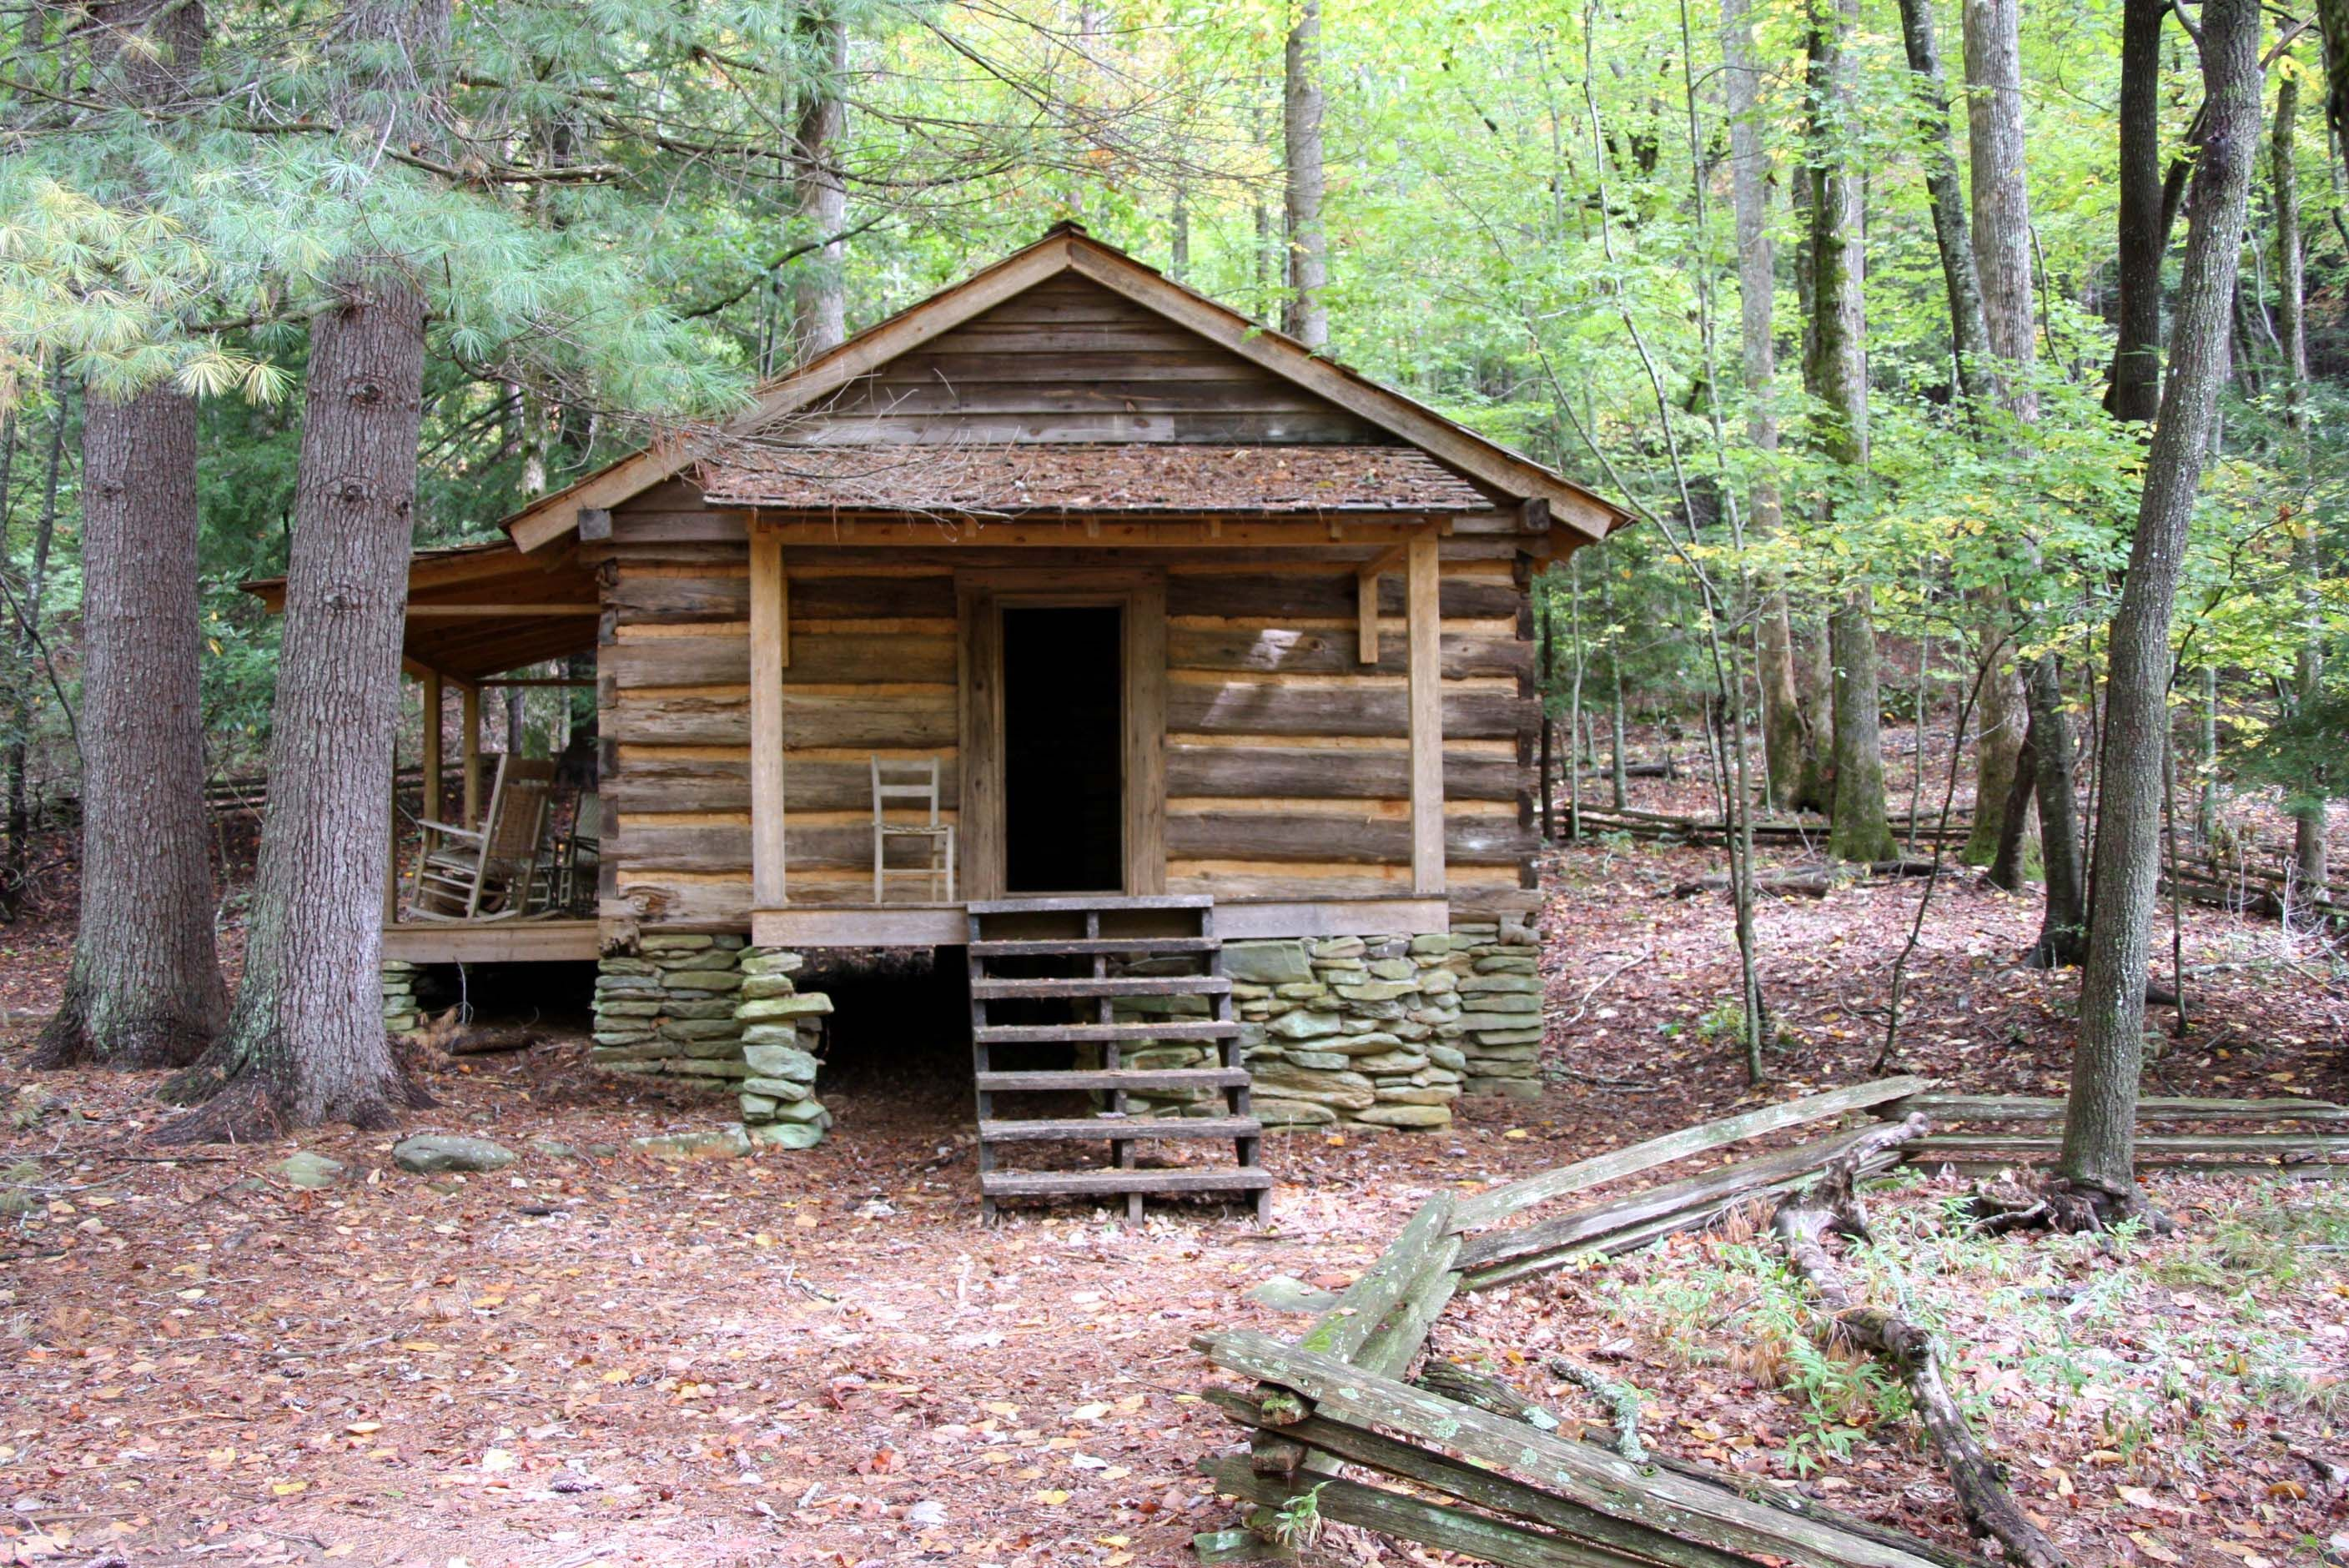 Appalachian Mountains Cabins   Bing Images